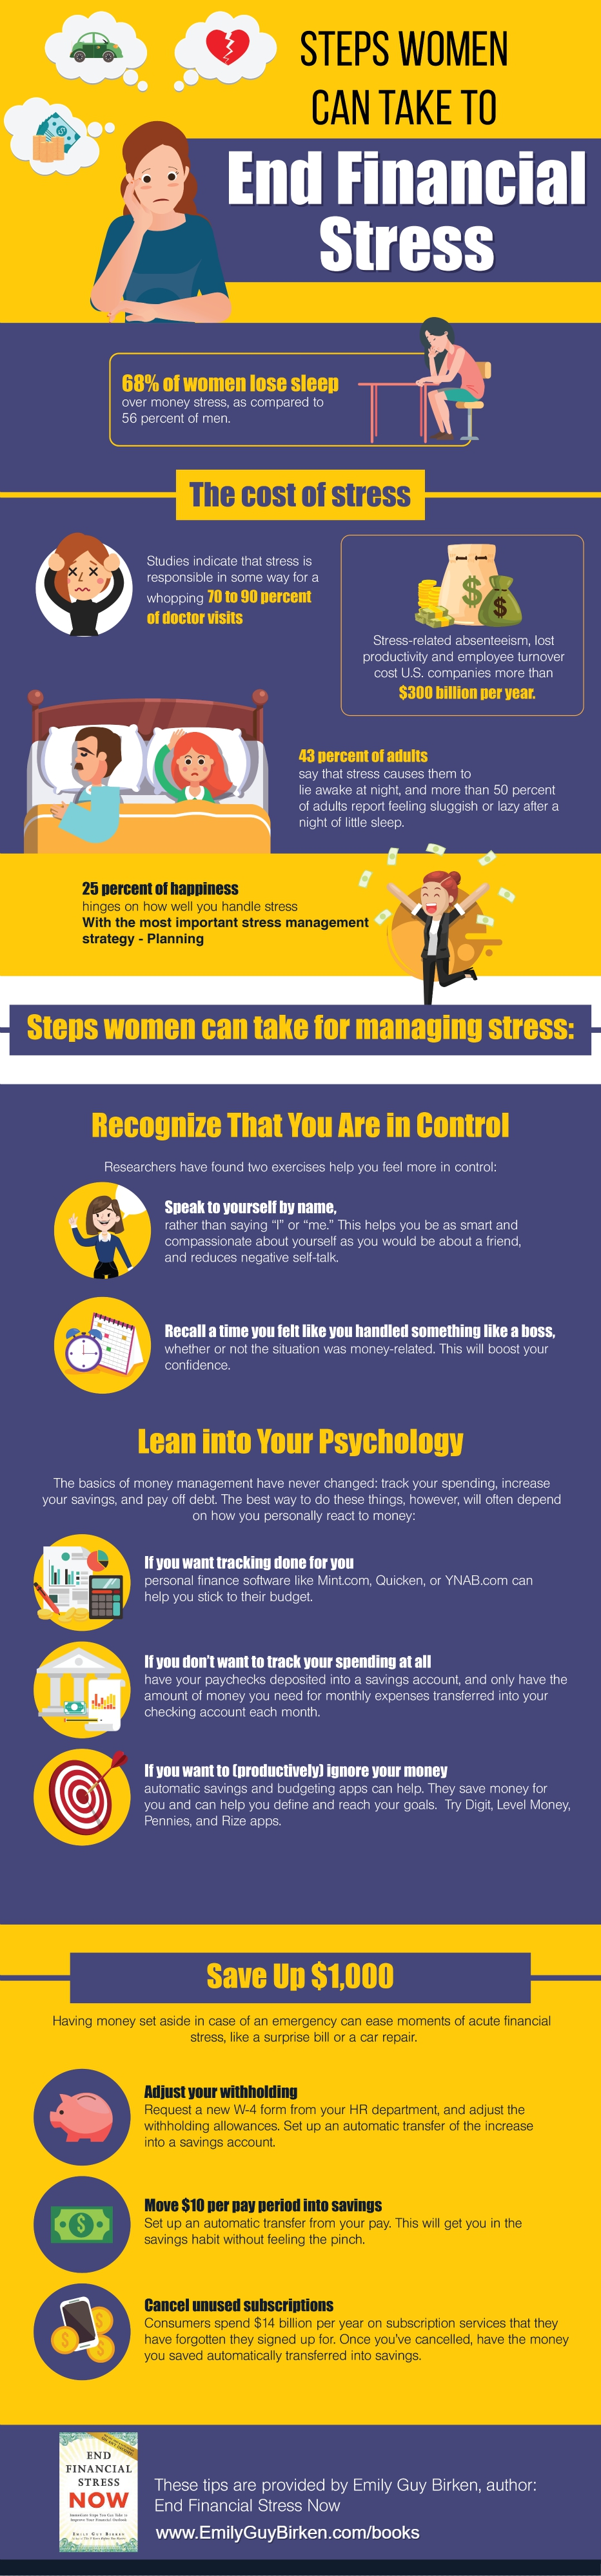 Steps to End Financial Stress Now [infographic]